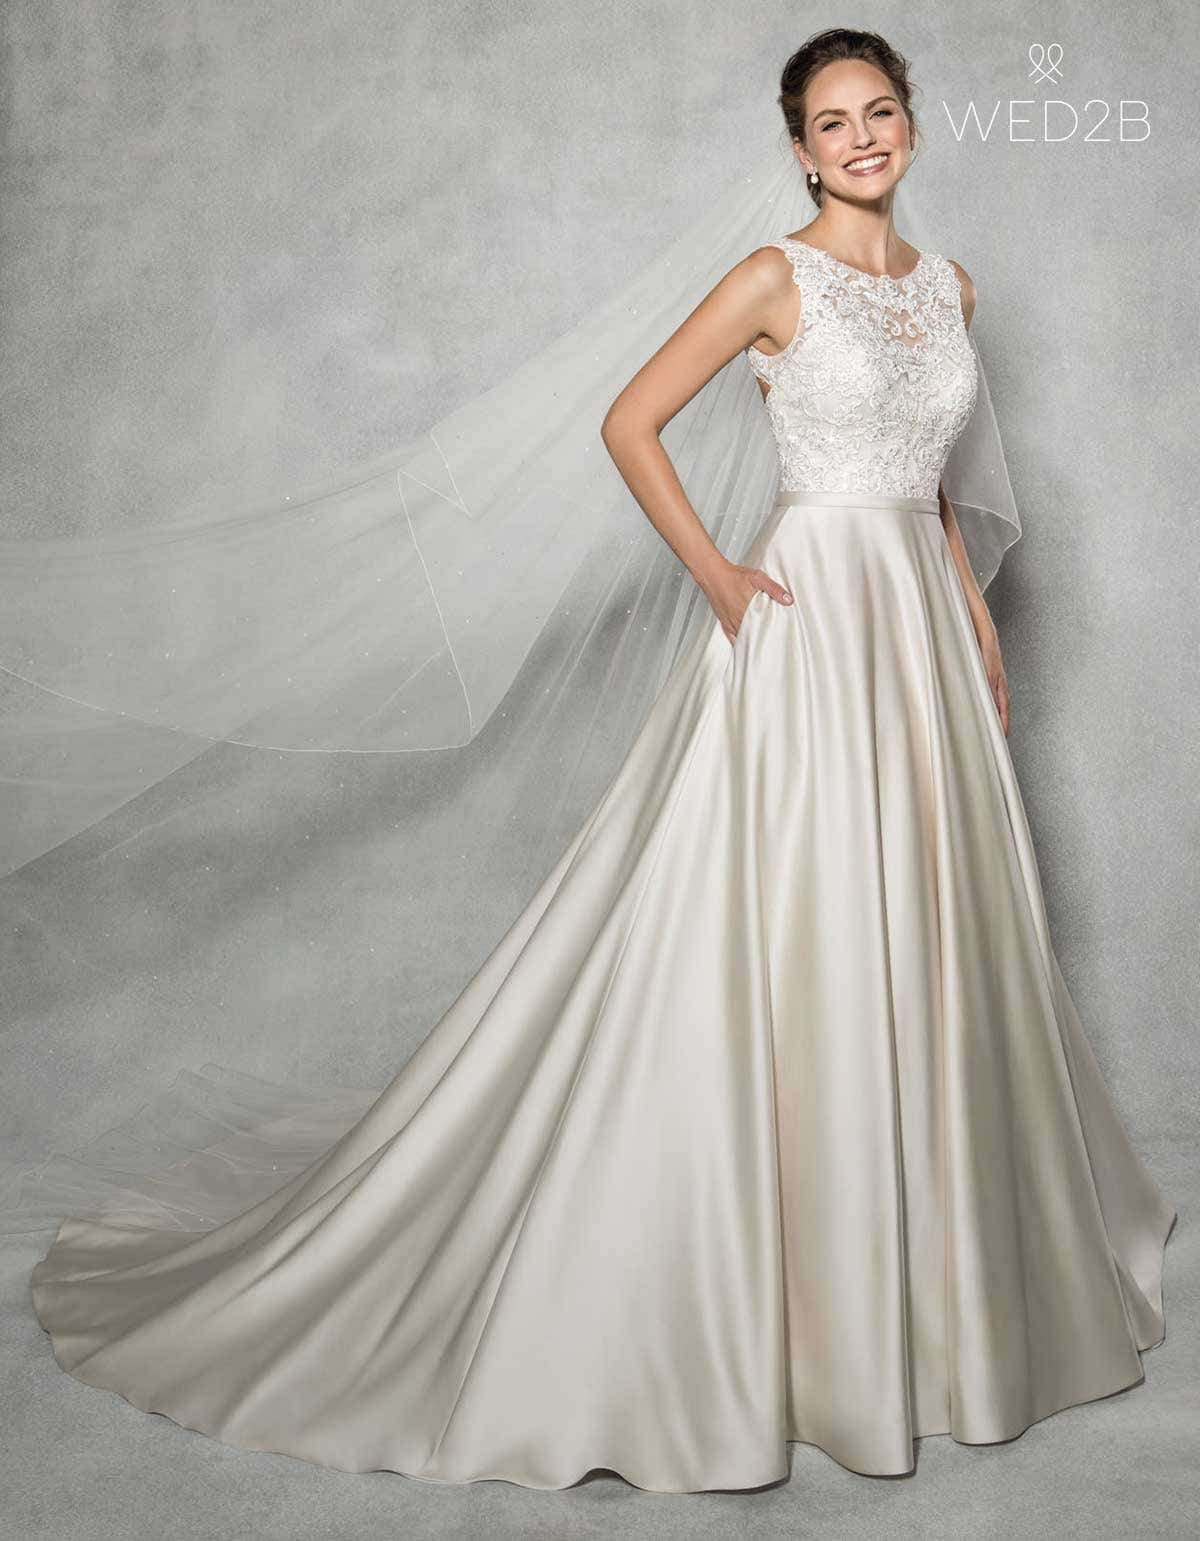 Wedding Dress With Pockets.Perfect Wedding Dresses With Pockets Wed2b Uk Blog